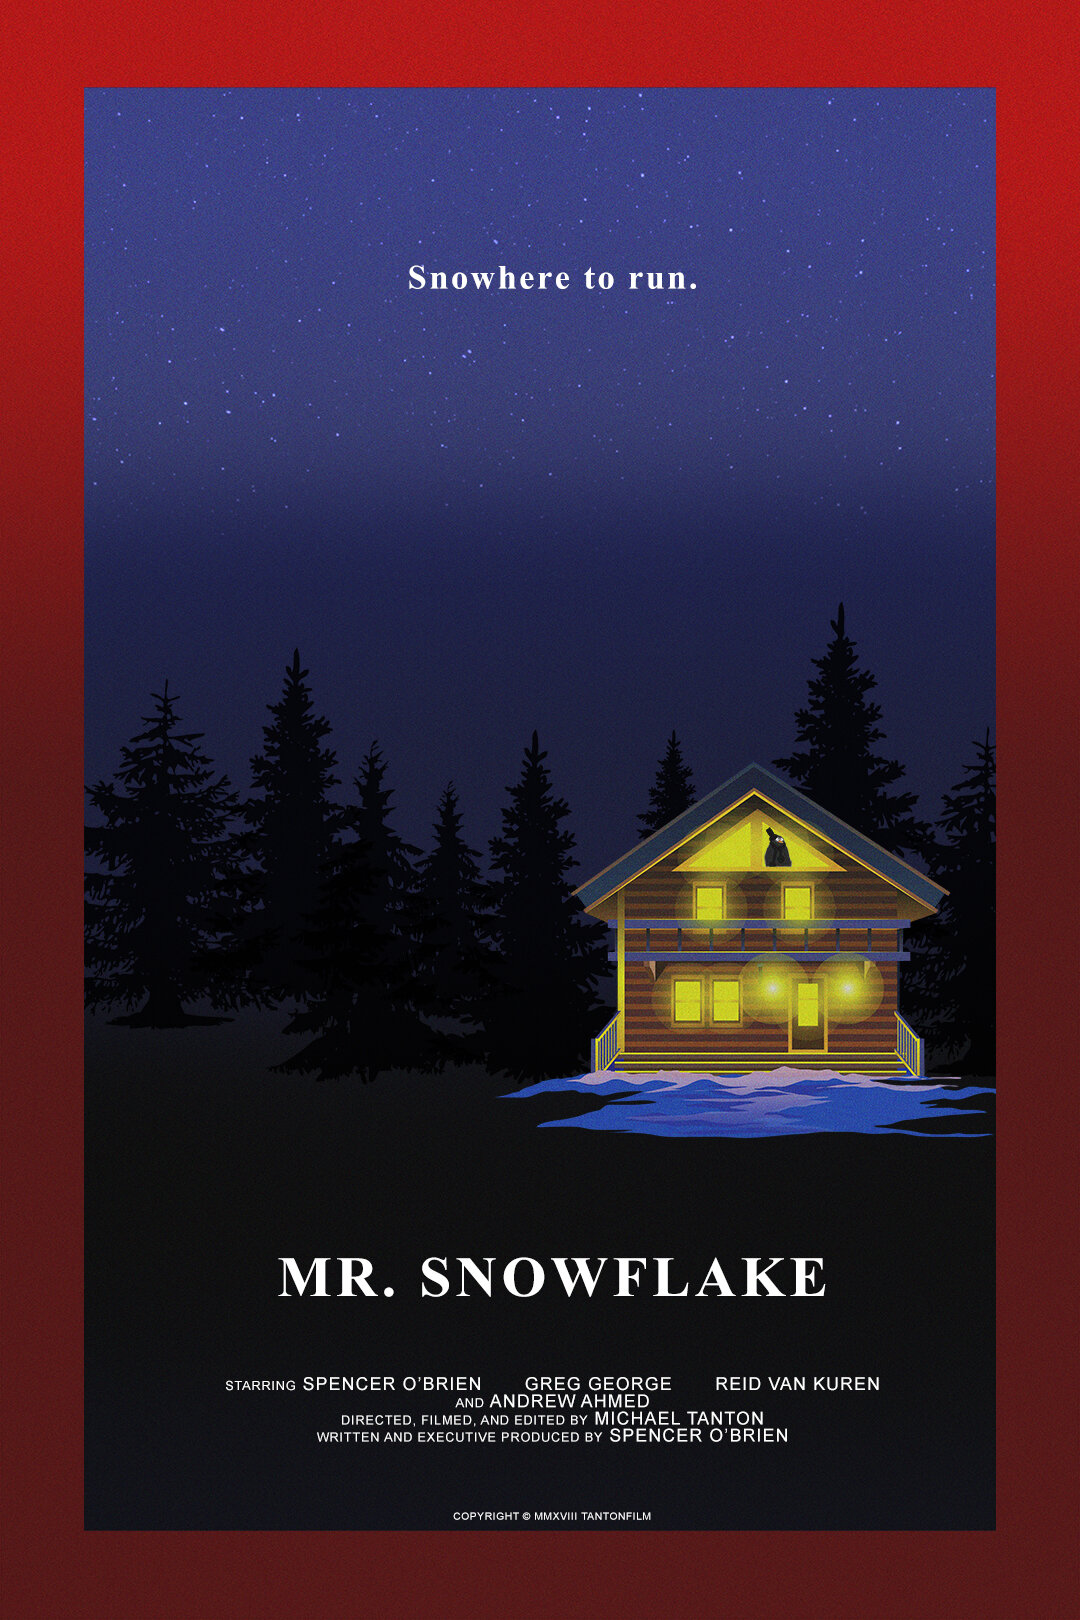 MR. SNOWFLAKE (2018) - DIRECTOR, CINEMATOGRAPHER & PICTURE EDITORPaul and his friends are excited for their annual winter cabin weekend. Things take a dramatic turn when one of them goes missing, and a mysterious stuffed snowman seems to have a mind of its own.written and executive produced bySPENCER O'BRIENdirected / produced / cinematography byMICHAEL TANTONstarringSPENCER O'BRIENGREG GEORGEREID VAN KURENMICHAEL TANTONand ANDREW AHMED